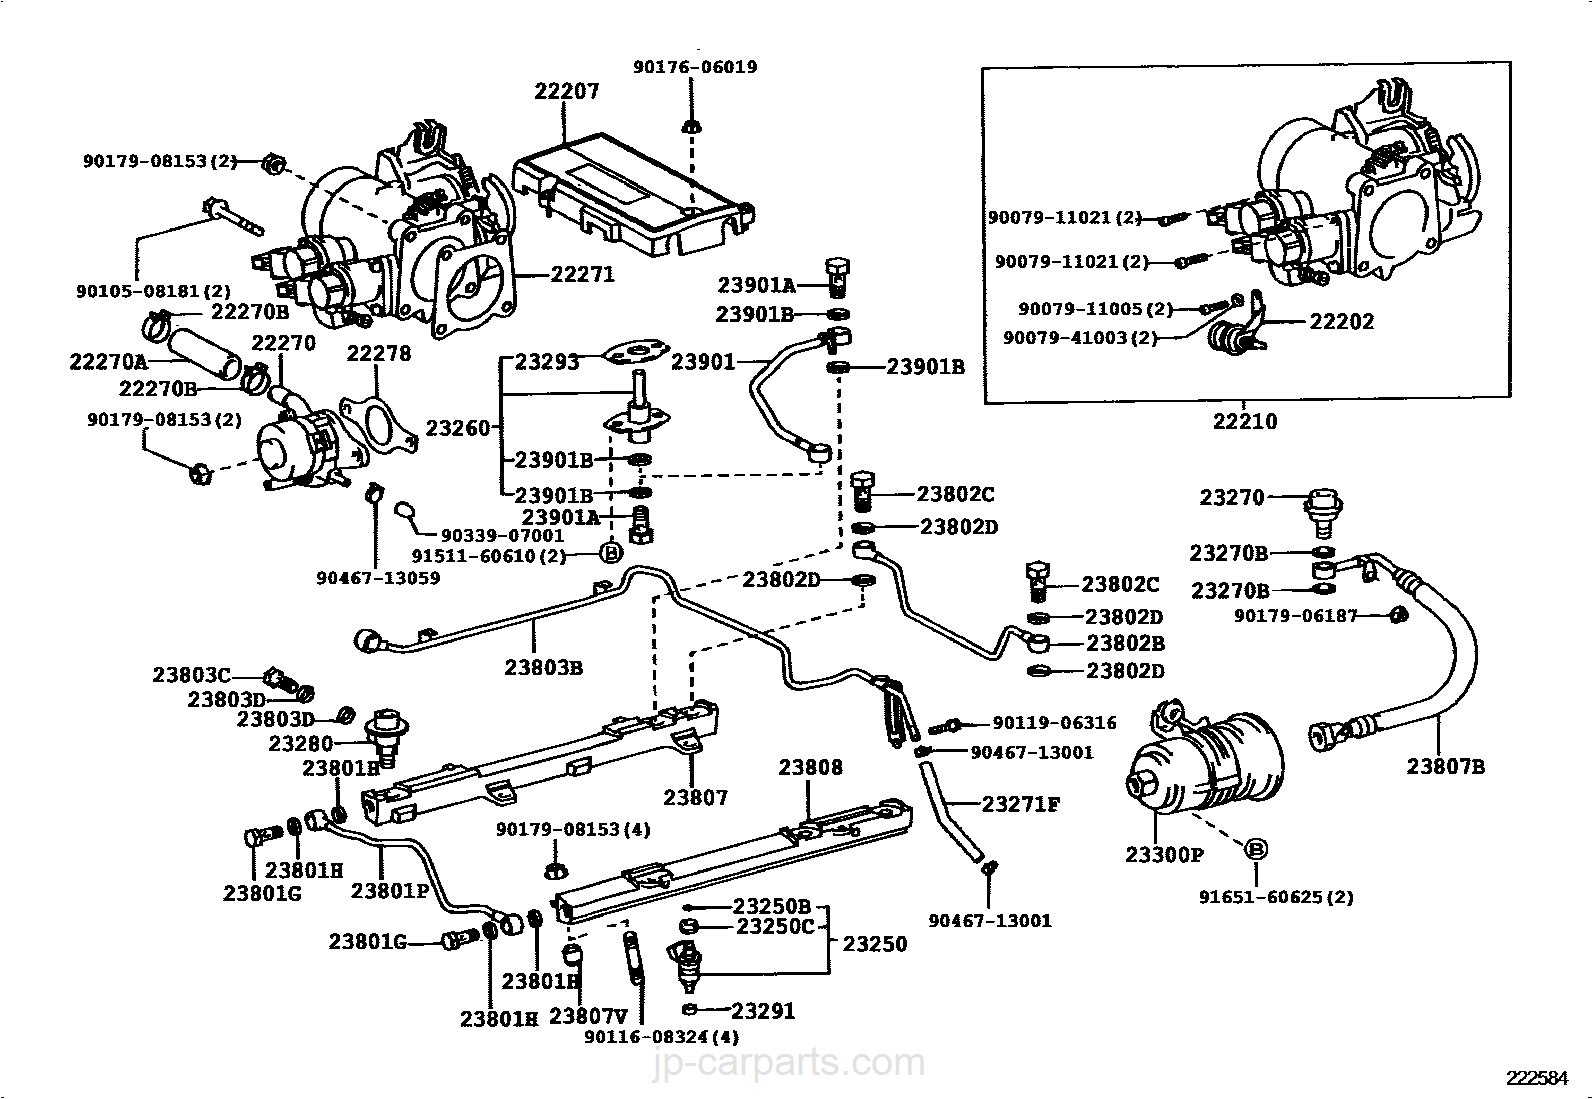 Fuel Injection System Toyota Part List 1uzfe Engine Diagram Select Image Size